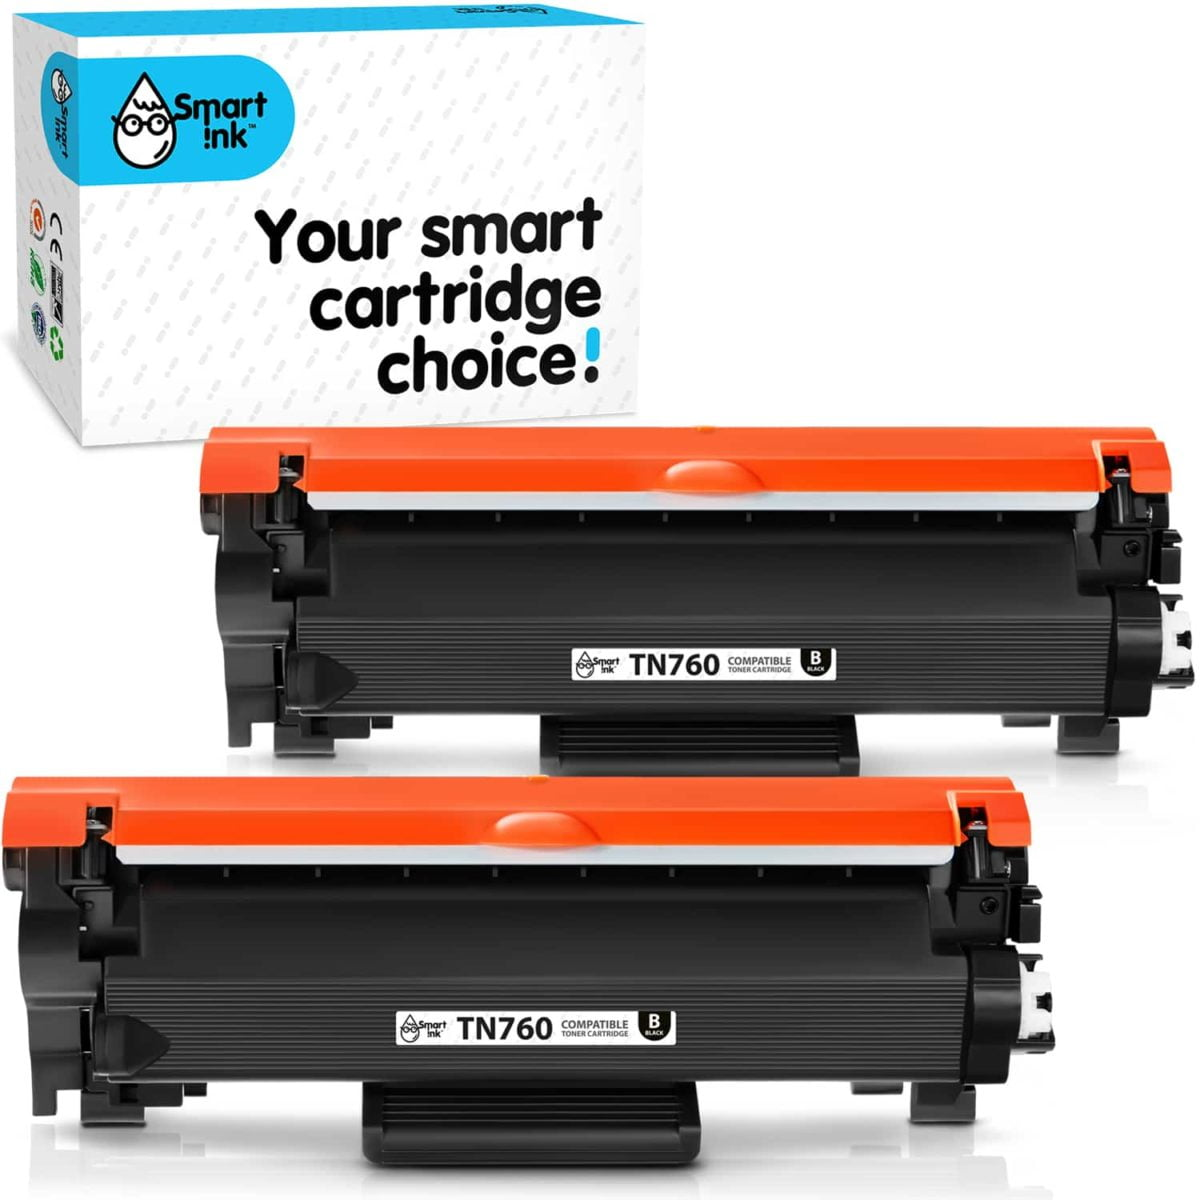 TN760, TN730. Smart Ink Toner Cartridge Replacement for Brother TN 760 TN 730(2 pack), Compatible